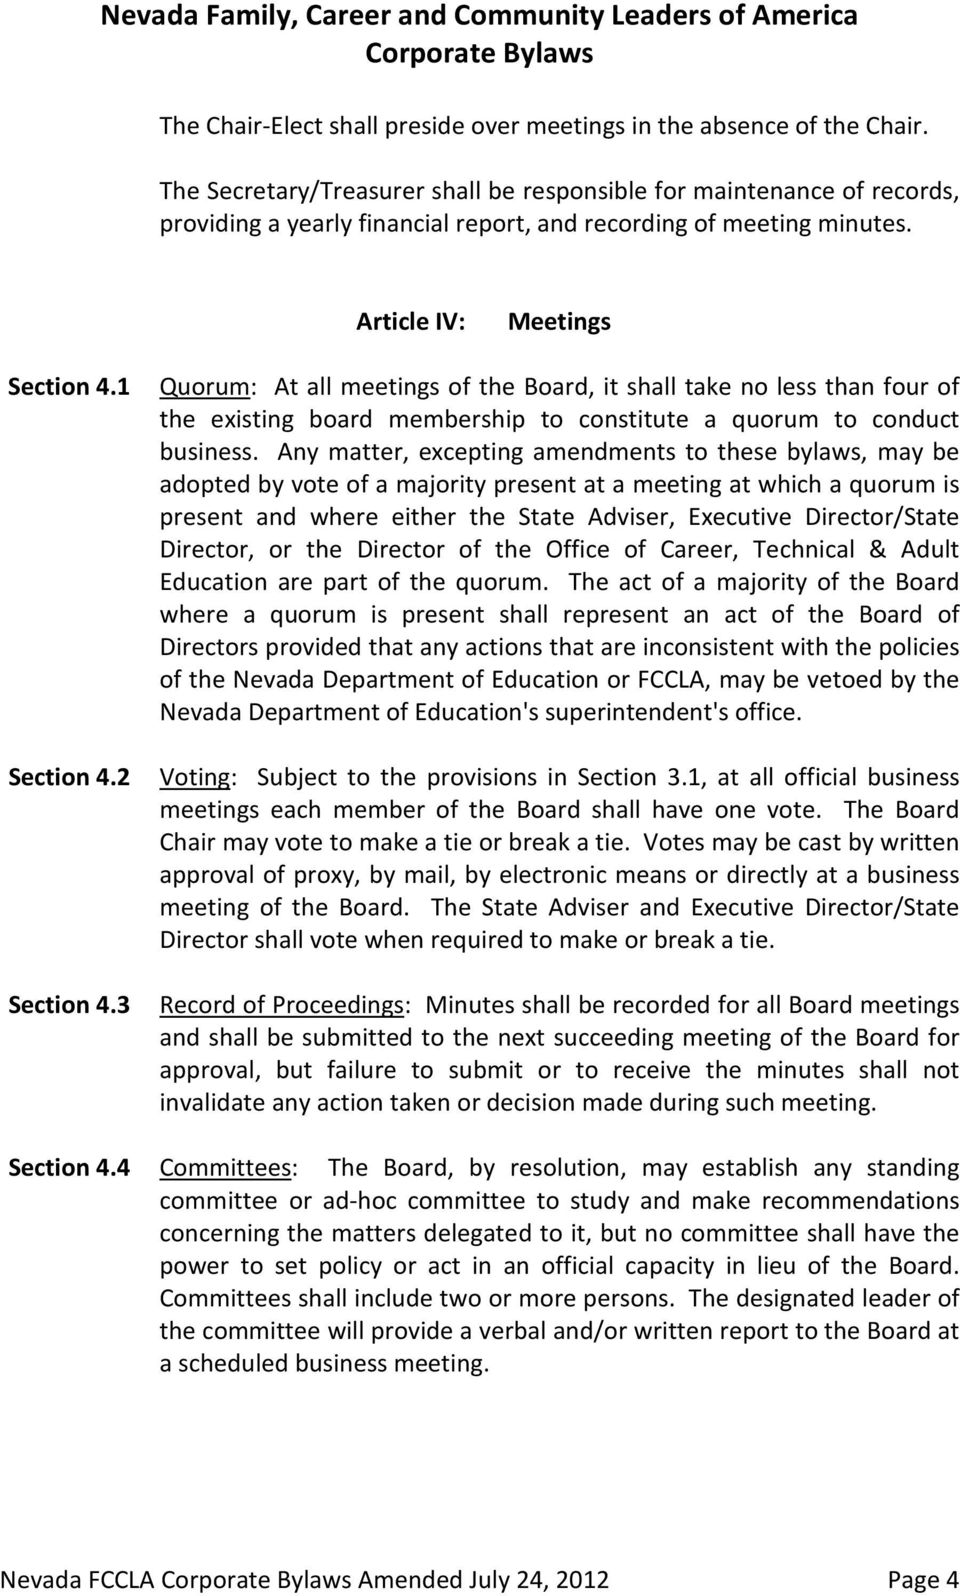 1 Quorum: At all meetings of the Board, it shall take no less than four of the existing board membership to constitute a quorum to conduct business.